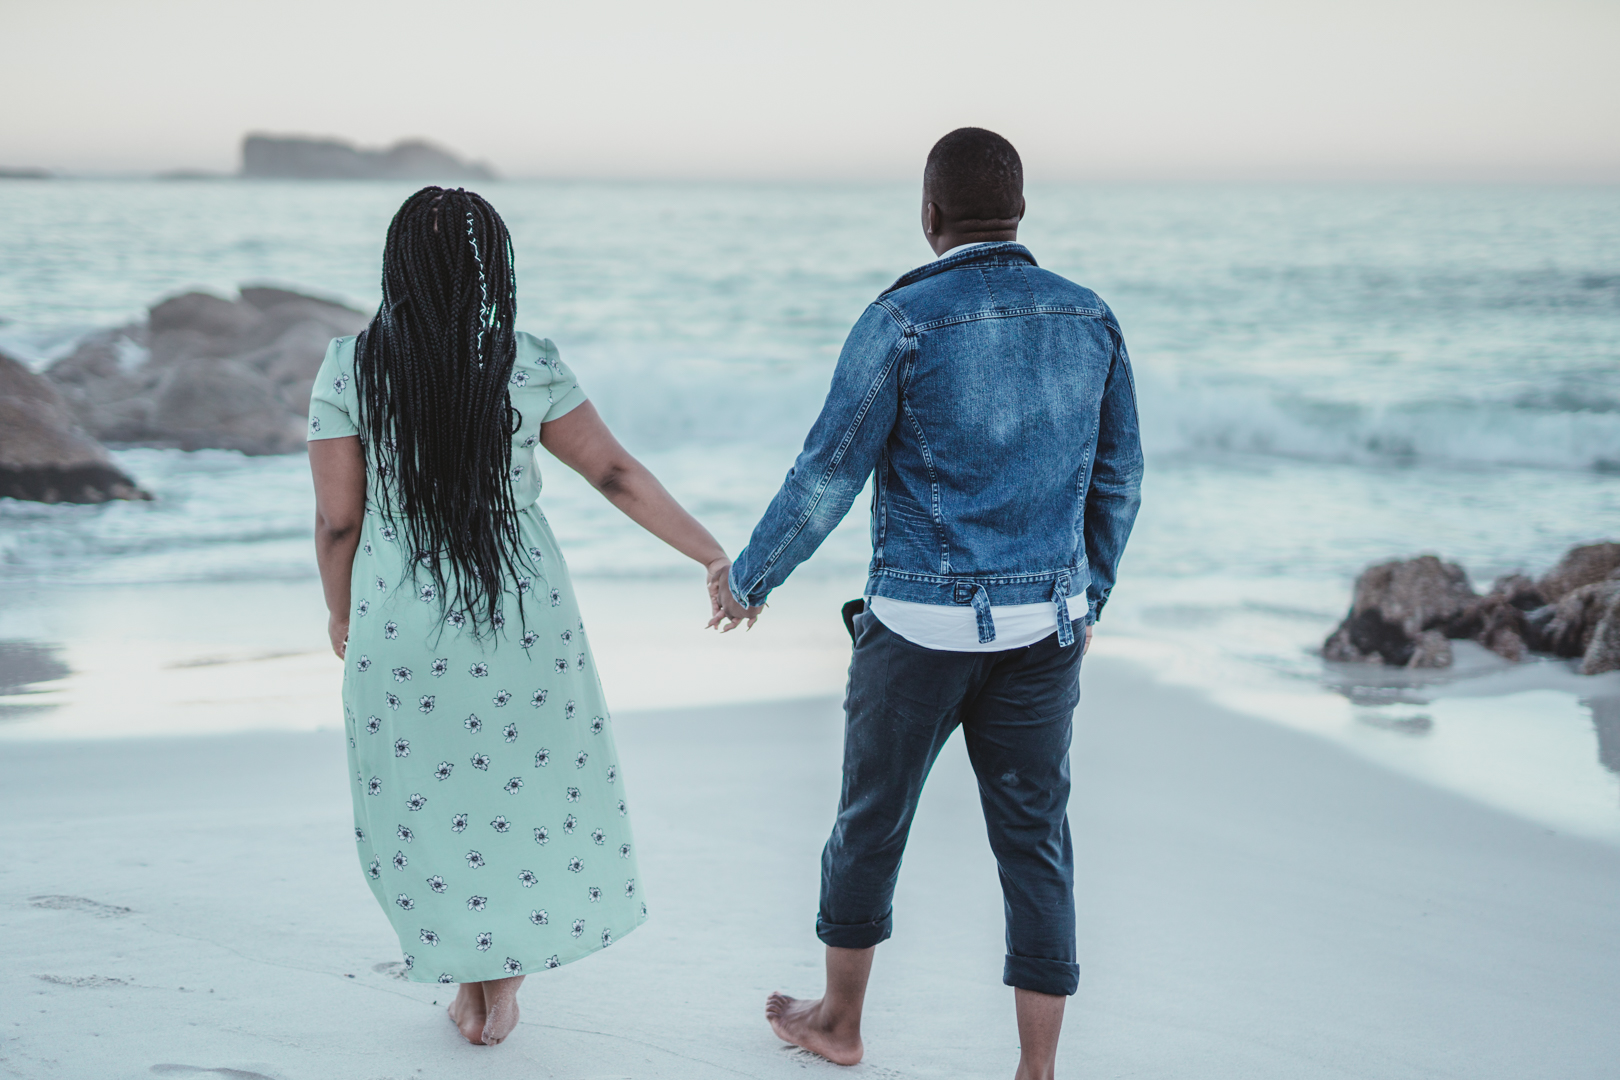 Couples Photos - Cape Town Beach session by Cape Image Co. _Small-file-13.jpg